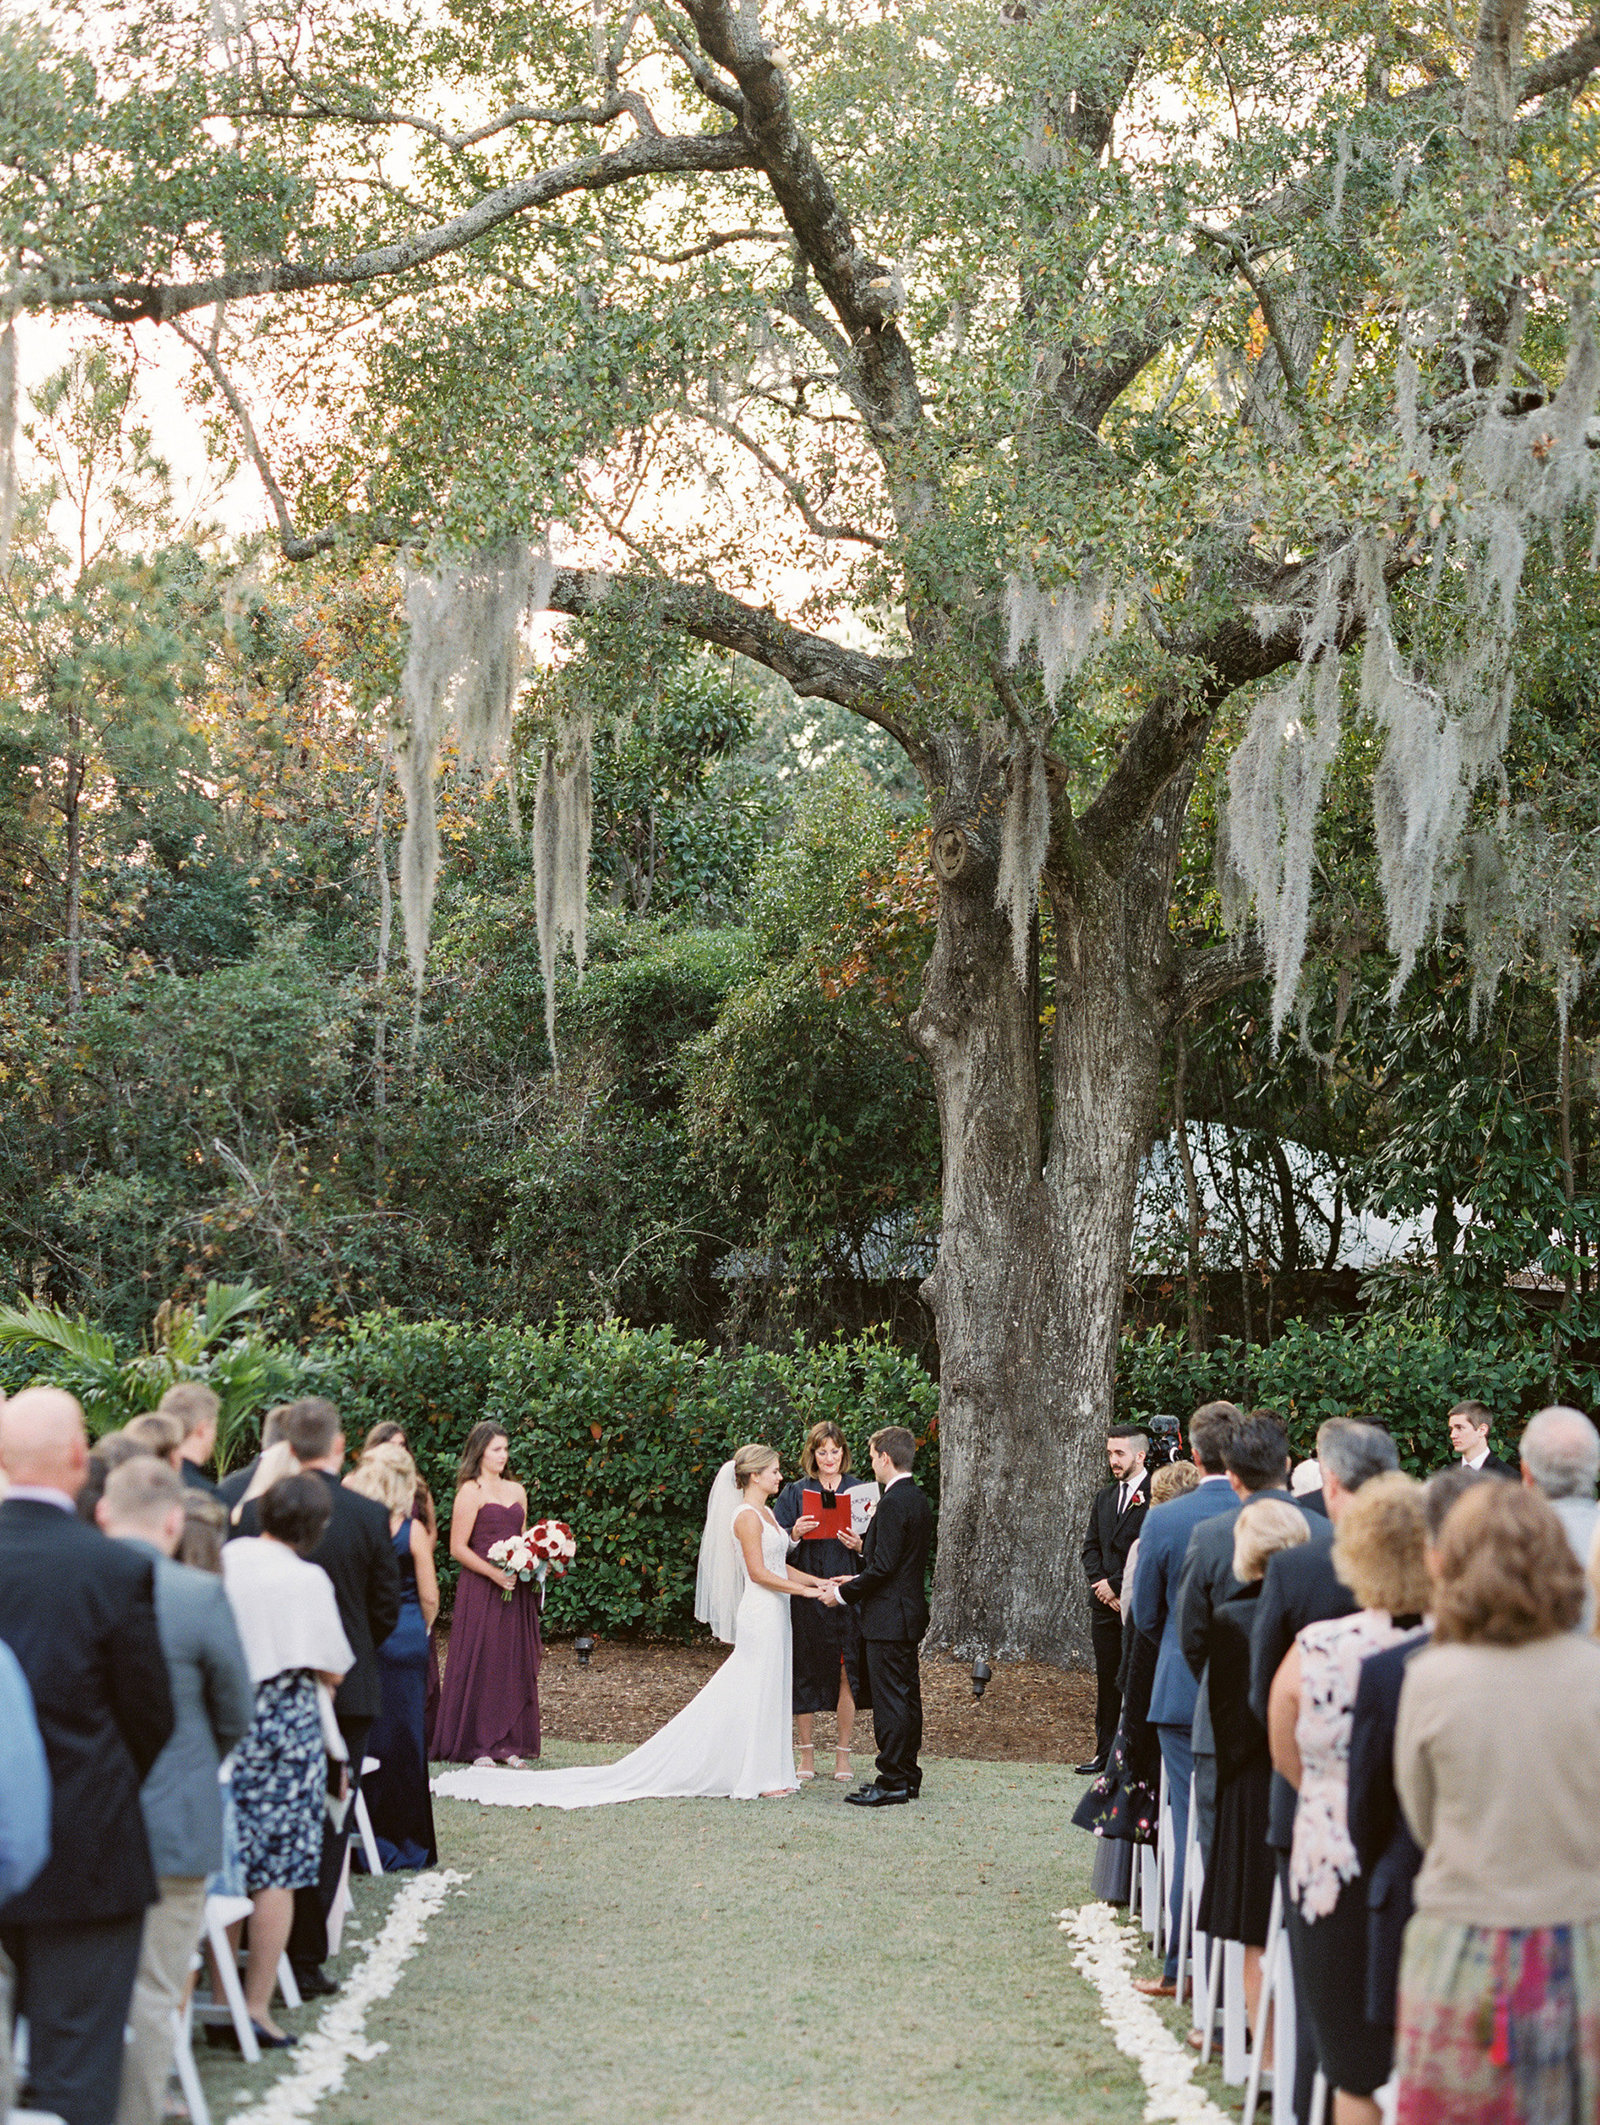 20171216-Pura-Soul-Photo-Wrightsville-Manor-Cortale-Wedding-film-55